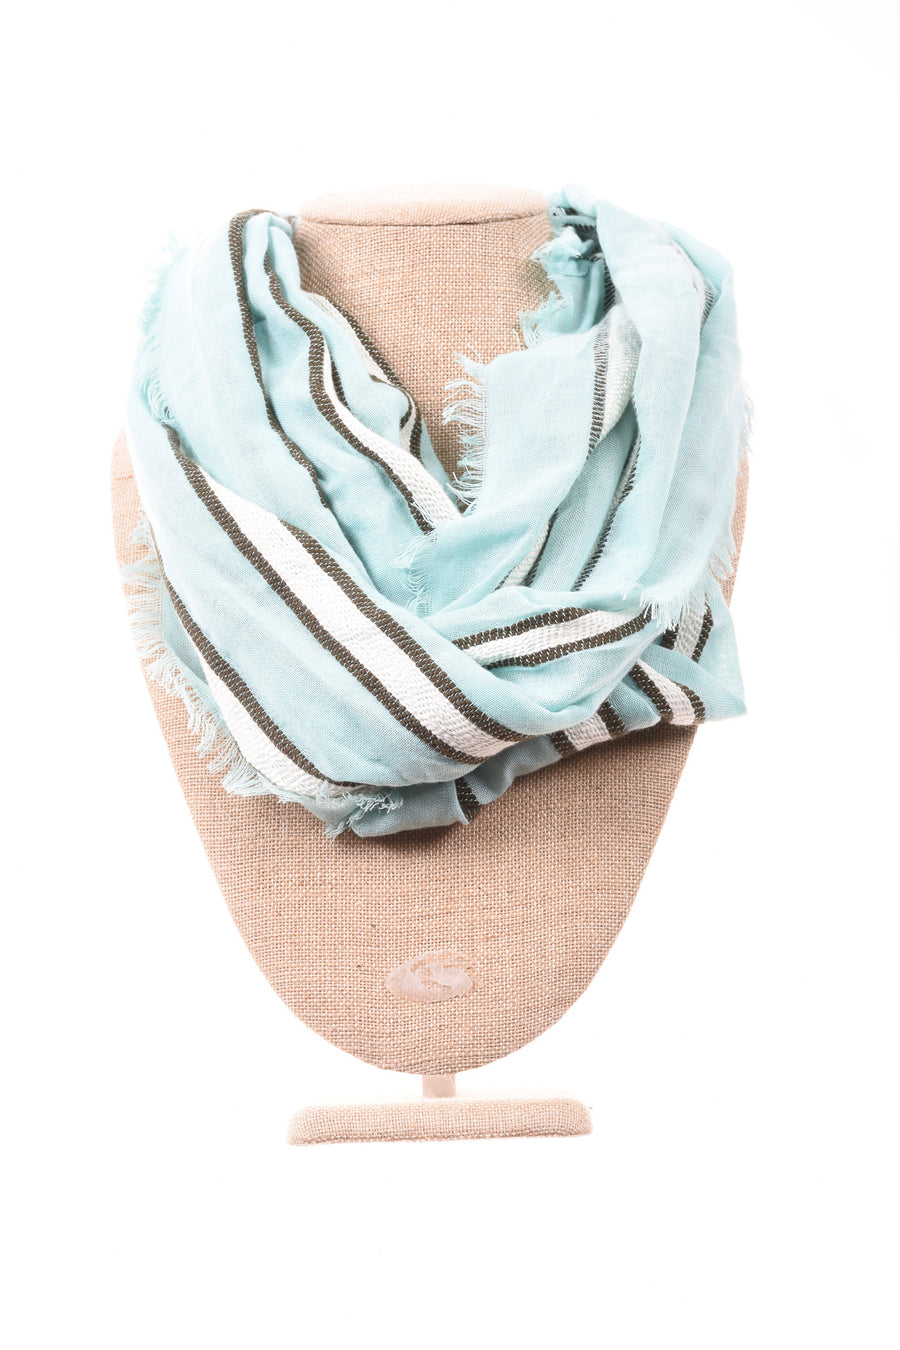 USED Ecote' Women's Scarf One Size Blue & Green